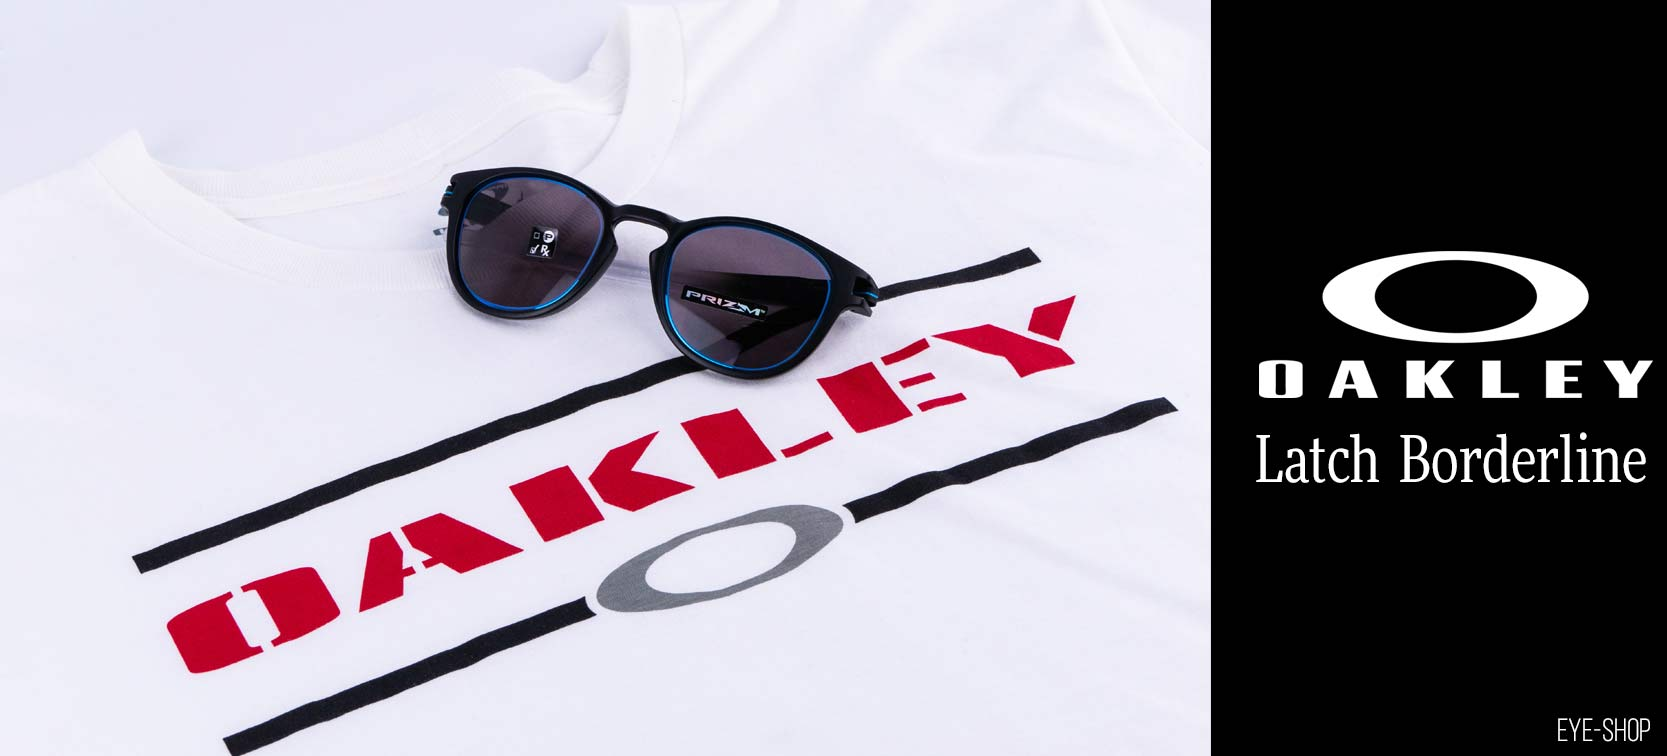 OAKLEY Oakley Latch Borderline a7fc2f15c49